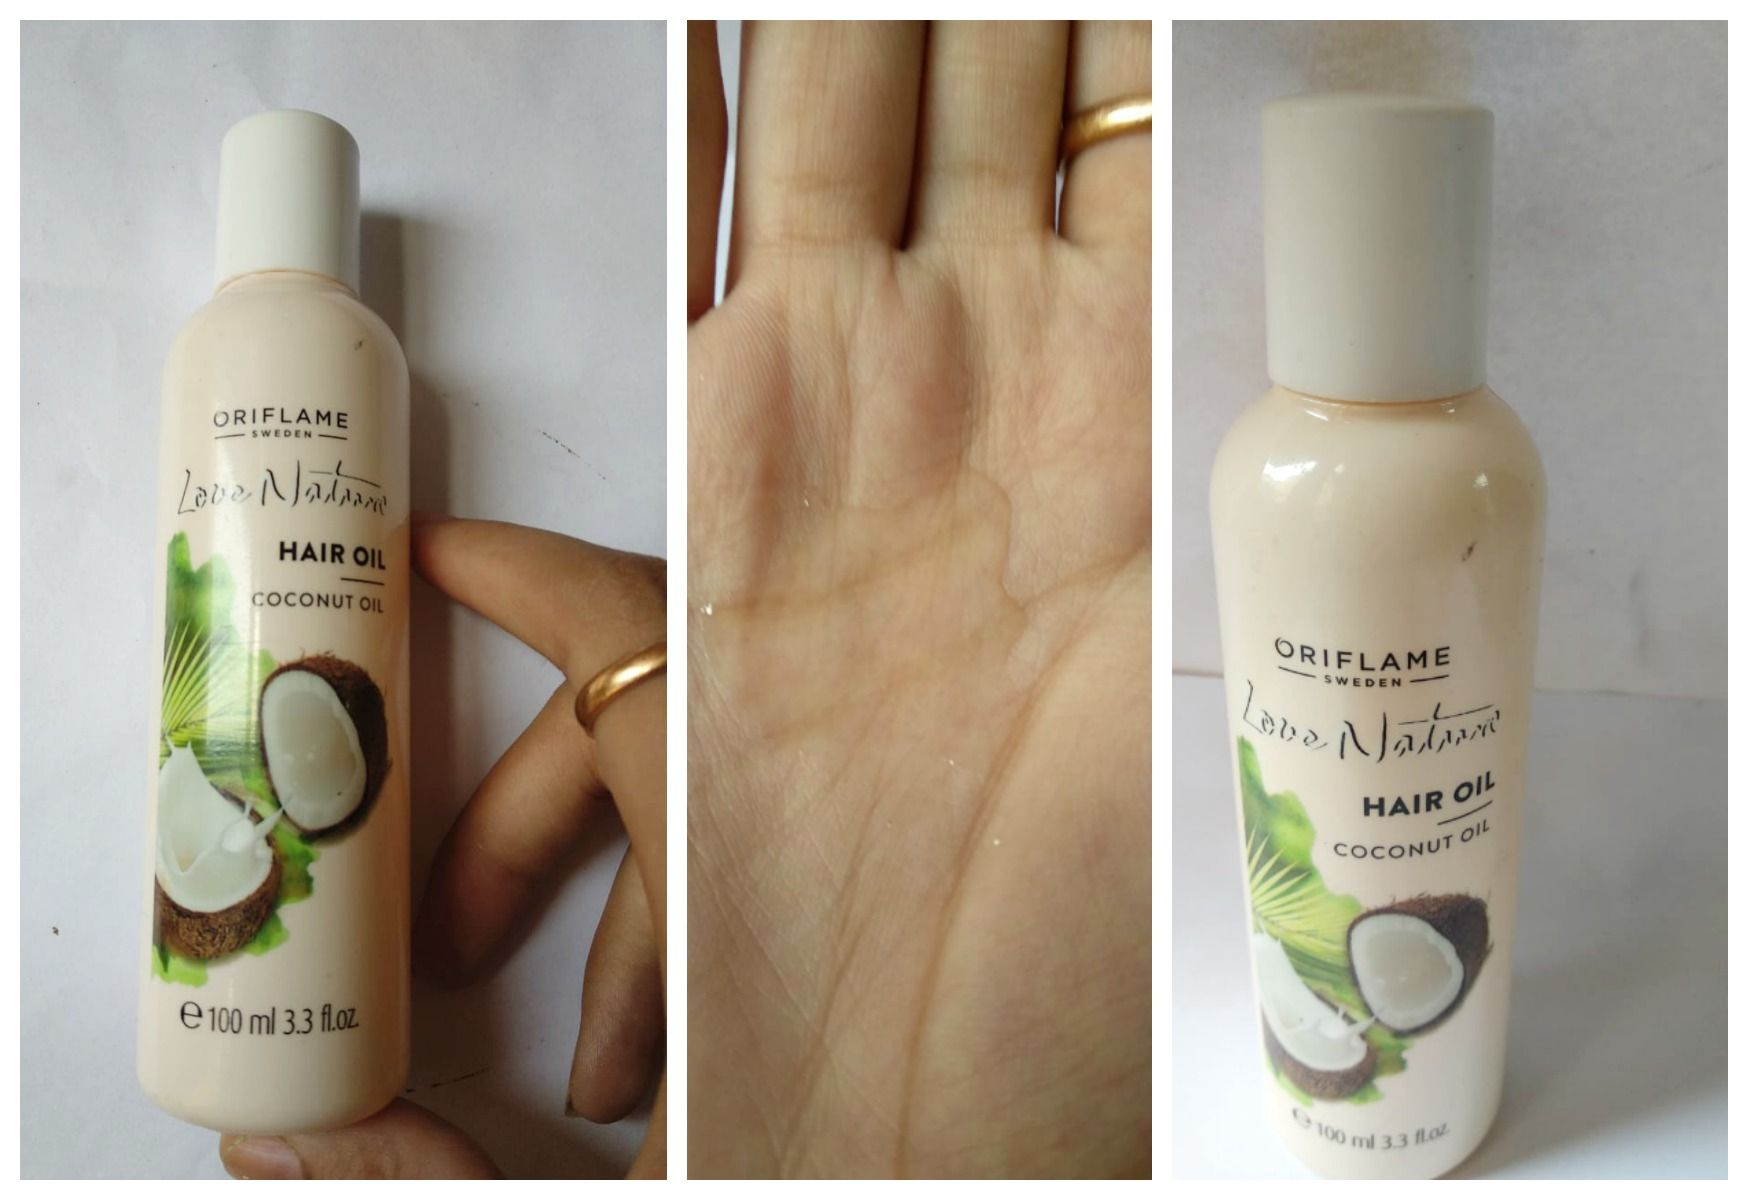 Oriflame Love Nature Coconut Hair Oil Review Hair oil